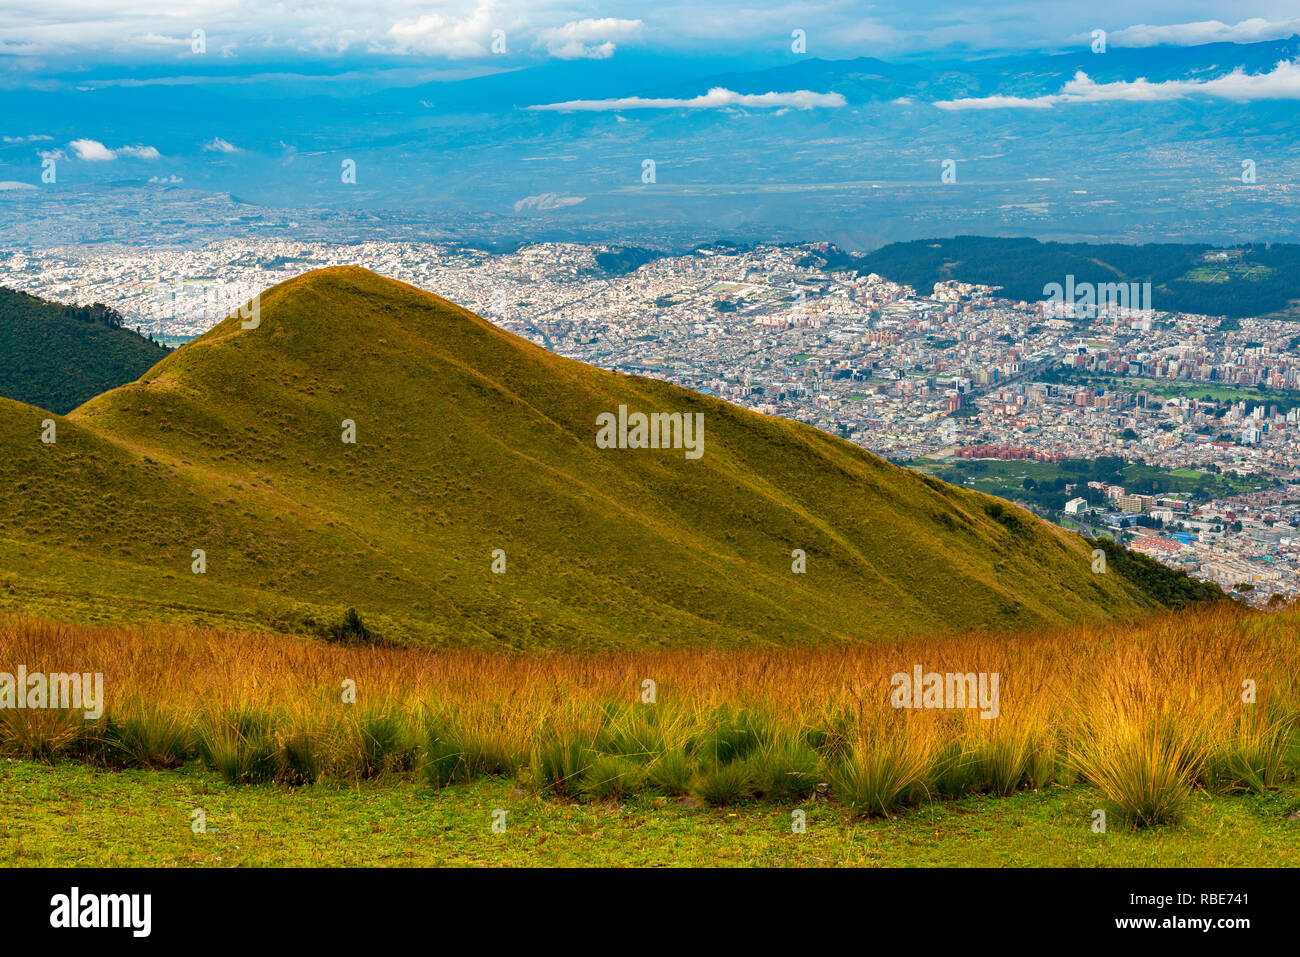 Aerial cityscape and skyline of Quito city seen from the Pichincha volcano, Ecuador. - Stock Image